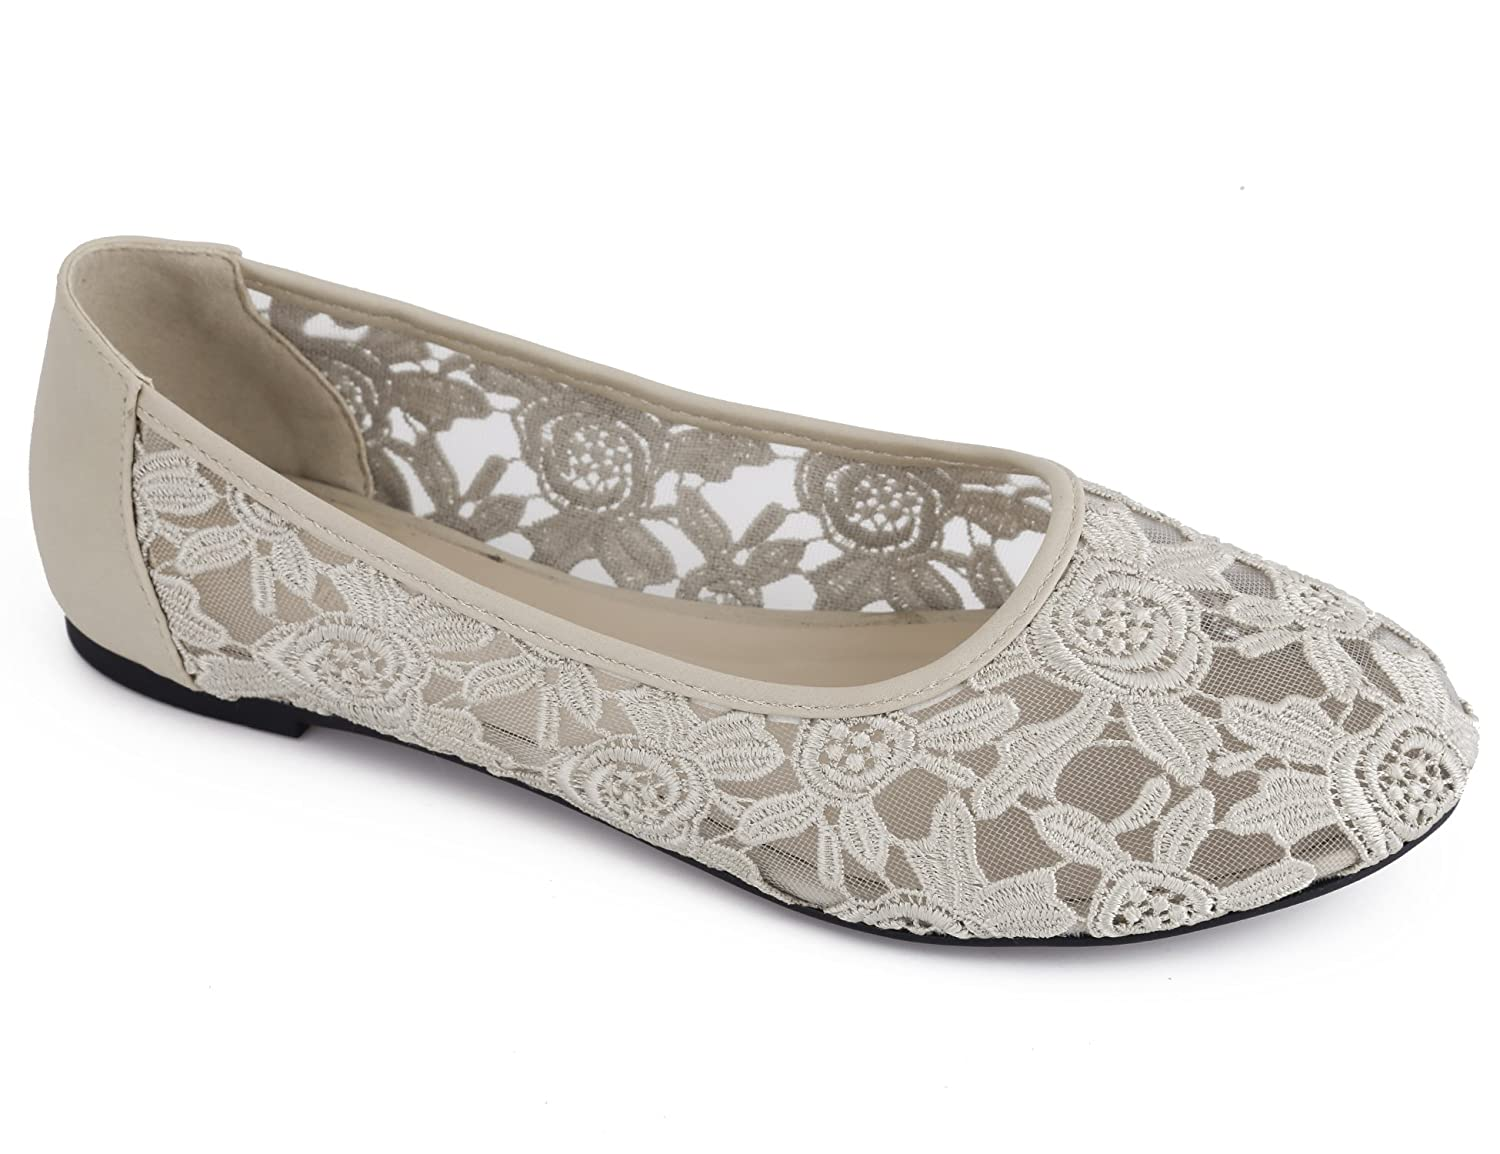 cb01c25f4fe39 Amazon.com | Greatonu Women Shoes Cut Out Slip On Synthetic Lace ...